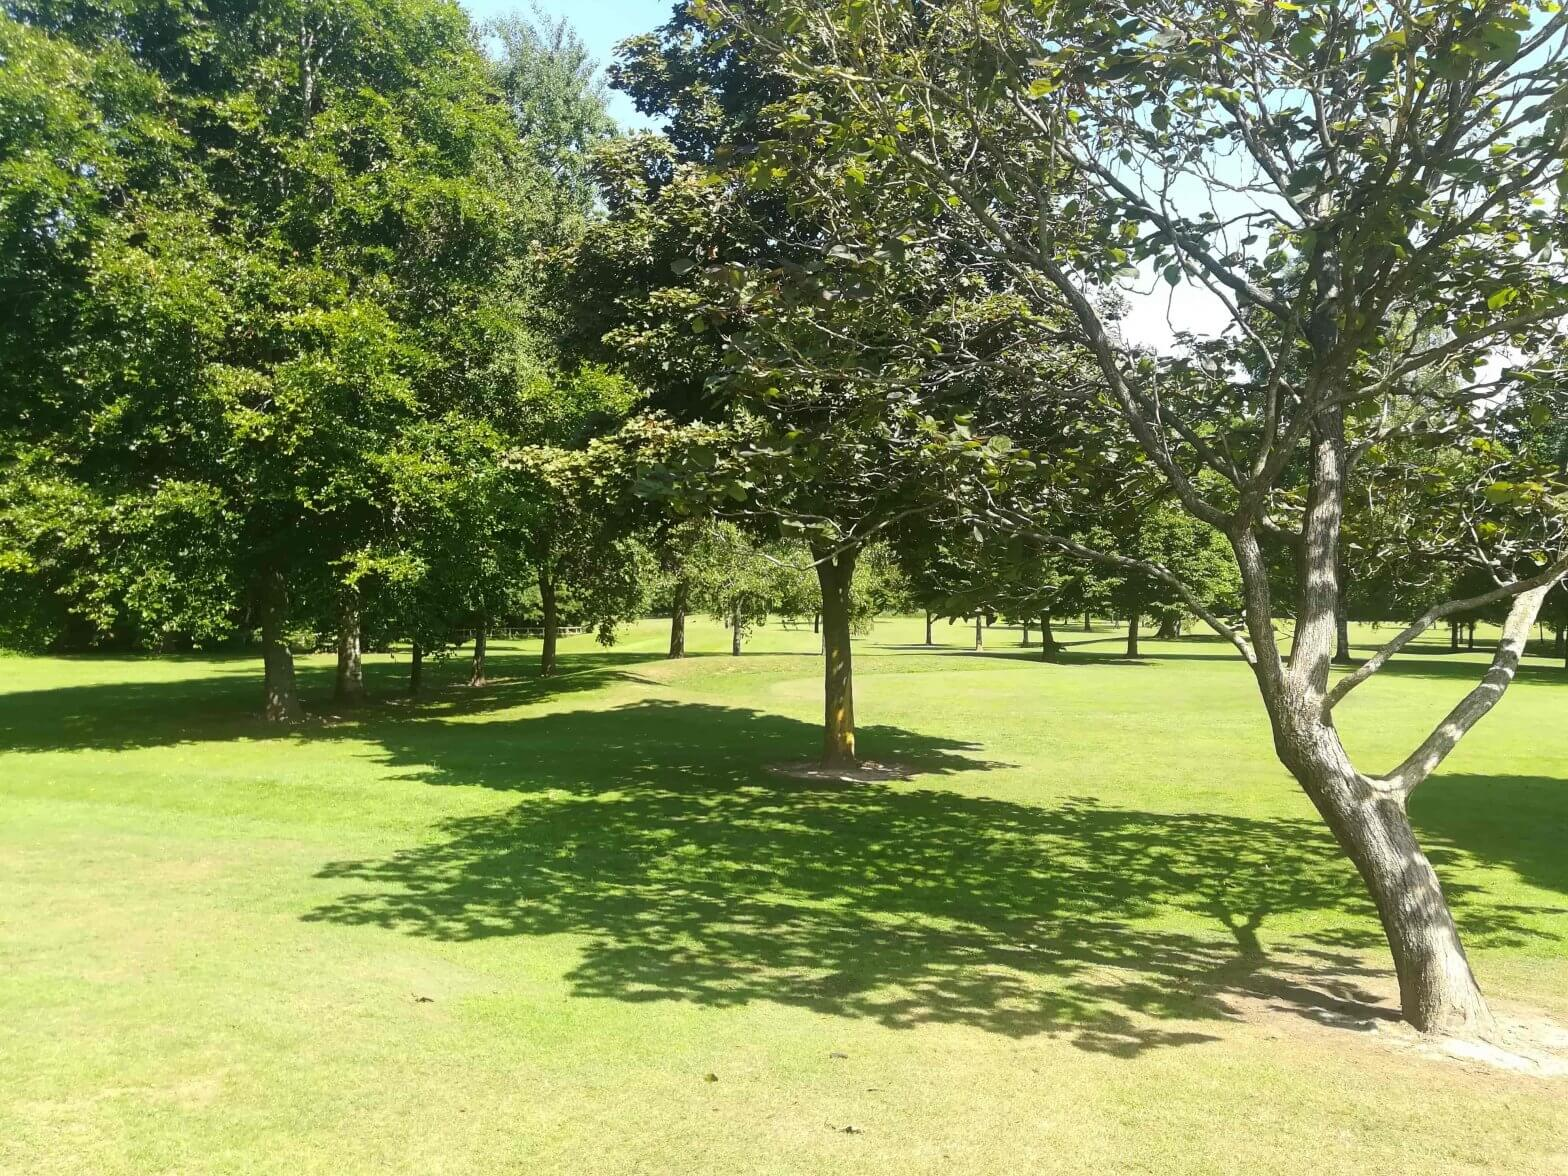 Pitch 'n' Putt at Walton Hall and Gardens, one of our many outdoor activities